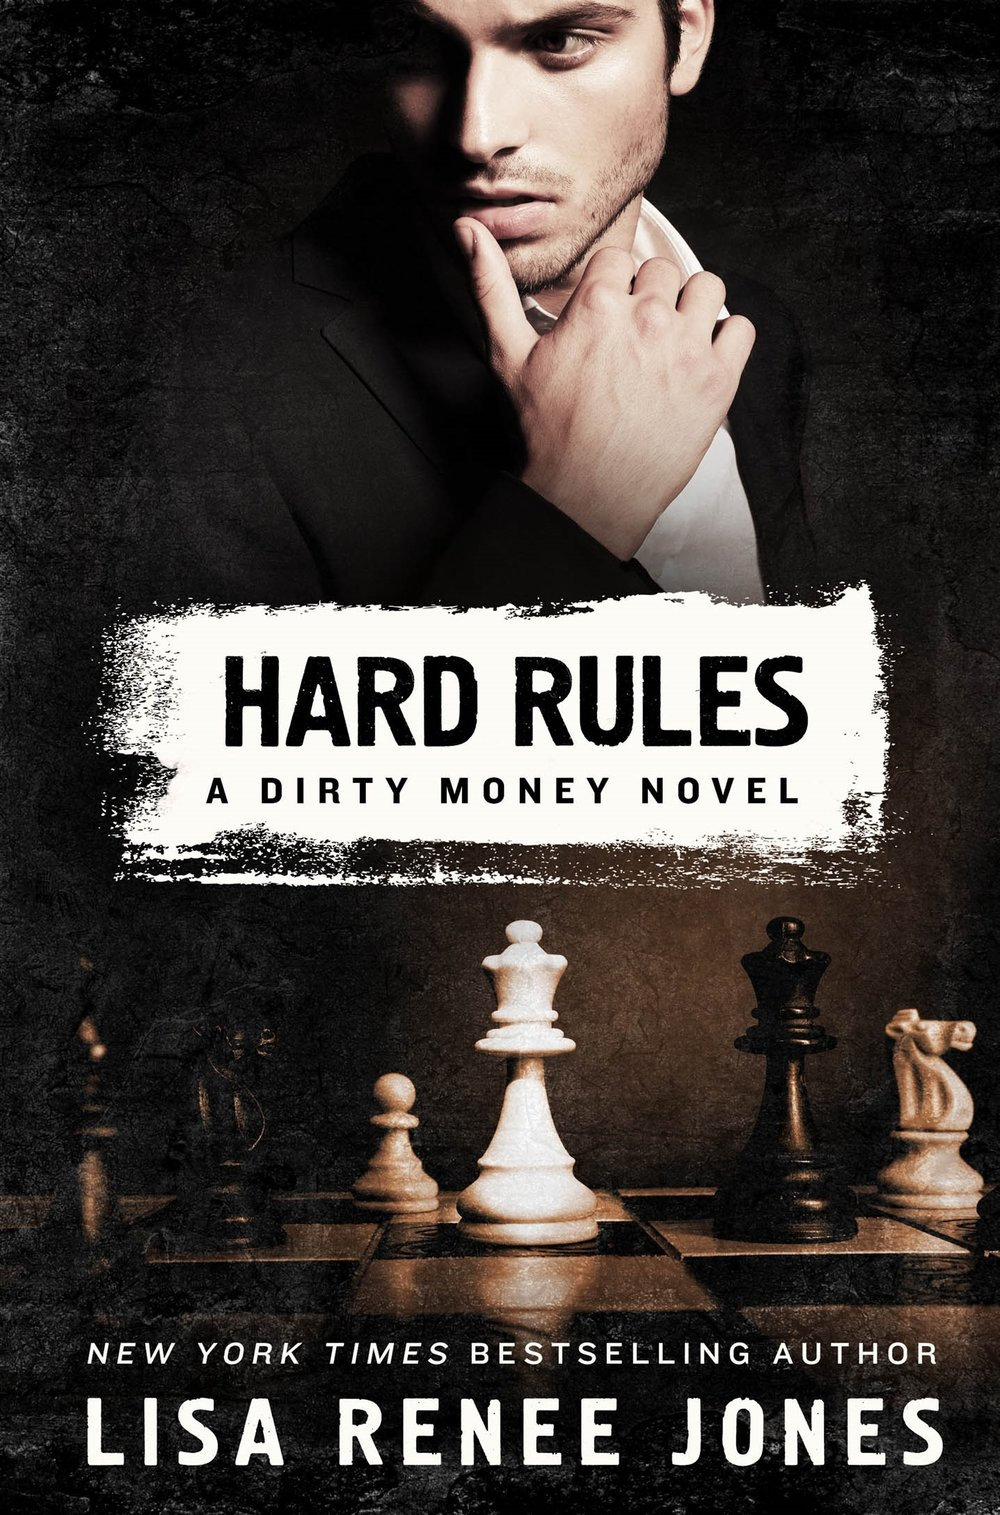 Start the Series Today! 99 CENT SALE - Hard Rules (Dirty Money book 1) Amazon US: http://amzn.to/2ugoFZi Nook: http://bit.ly/HardRulesBN iBooks: http://bit.ly/HardRulesiBooks Kobo: http://bit.ly/HardRulesKobo Add to GoodReads: https://goo.gl/LZQ7OQ